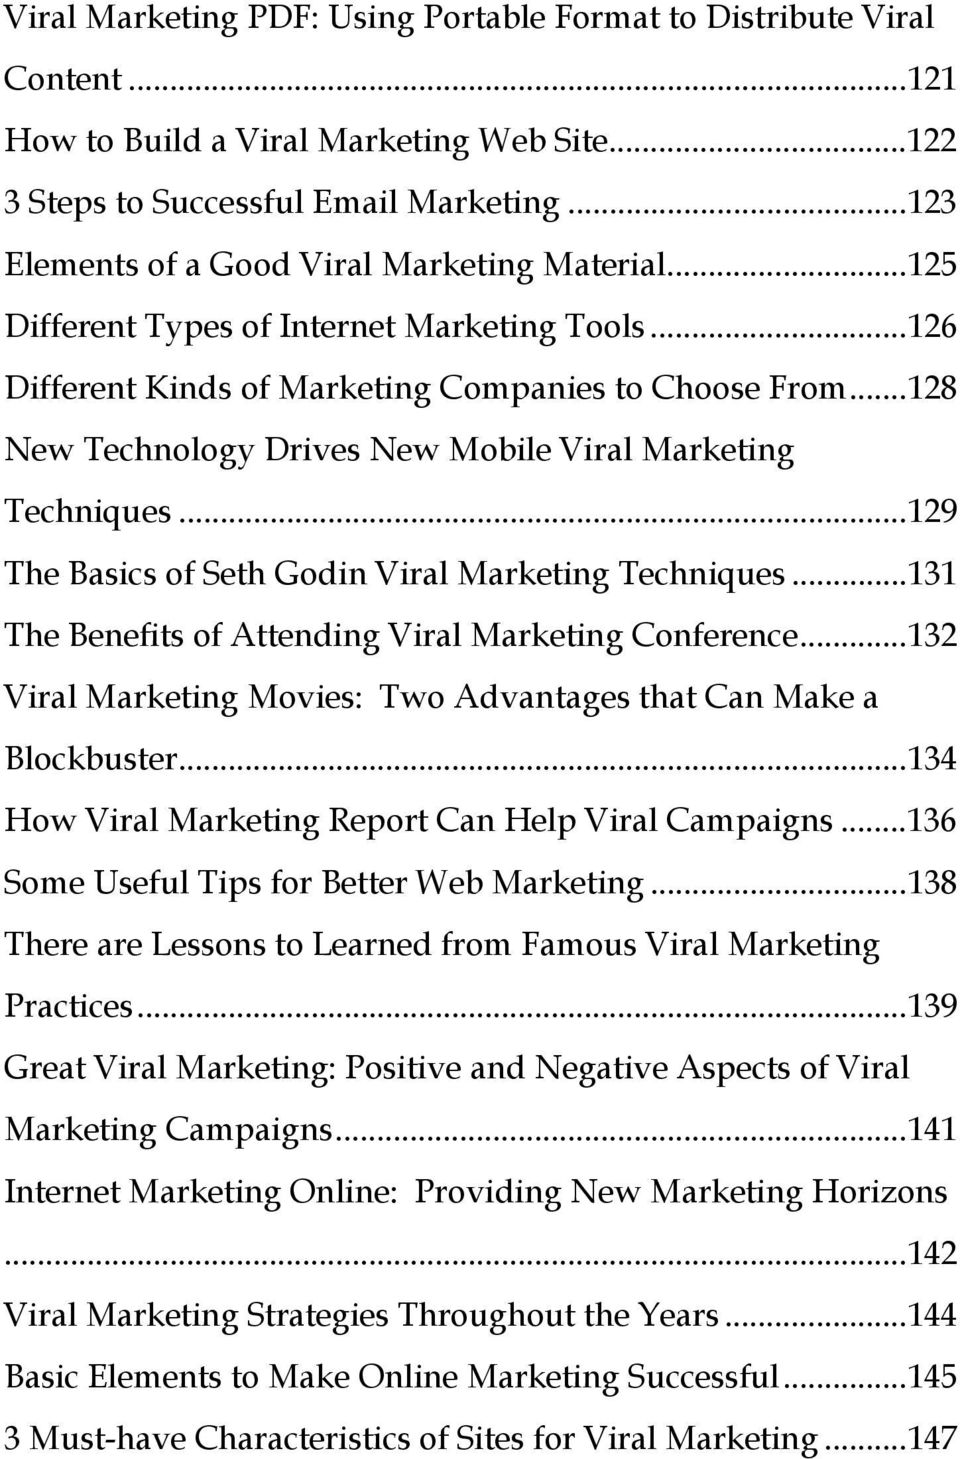 ..128 New Technology Drives New Mobile Viral Marketing Techniques...129 The Basics of Seth Godin Viral Marketing Techniques...131 The Benefits of Attending Viral Marketing Conference.